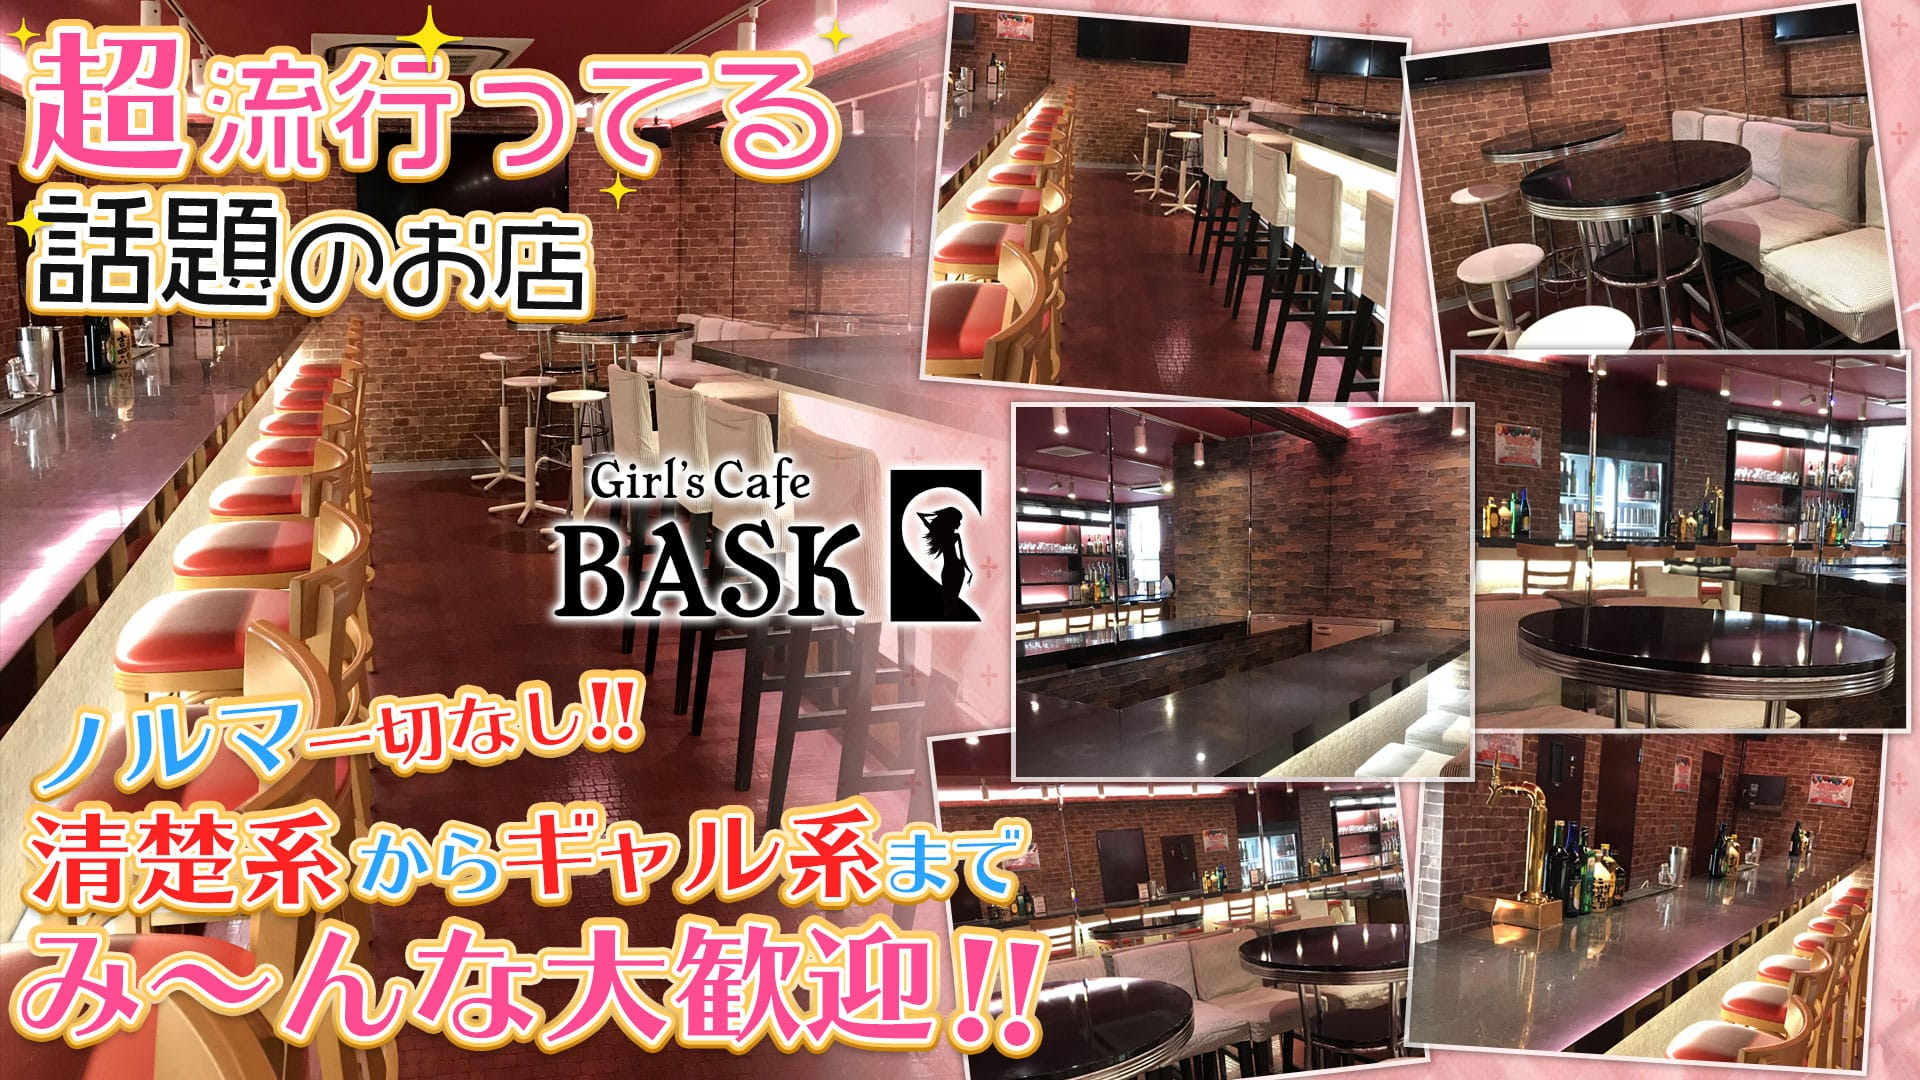 GIRL'S CAFE BASK(バスク) TOP画像